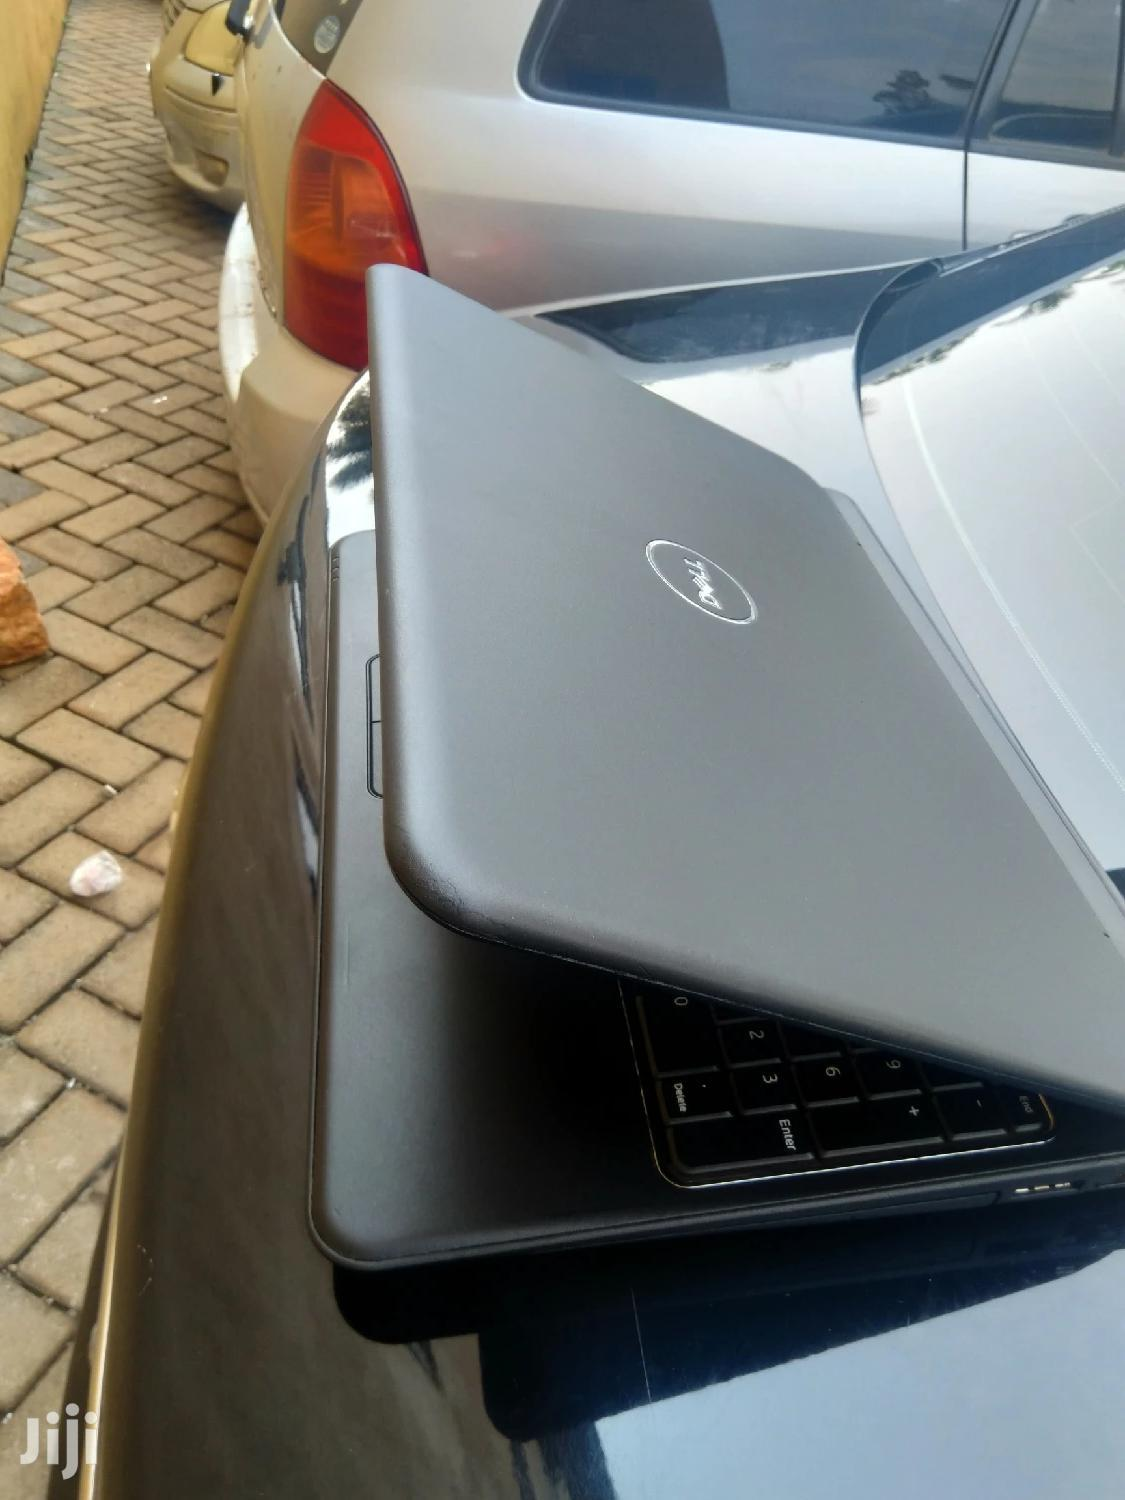 Archive: Laptop Dell Inspiron 17R N7110 4GB Intel Core i3 HDD 500GB